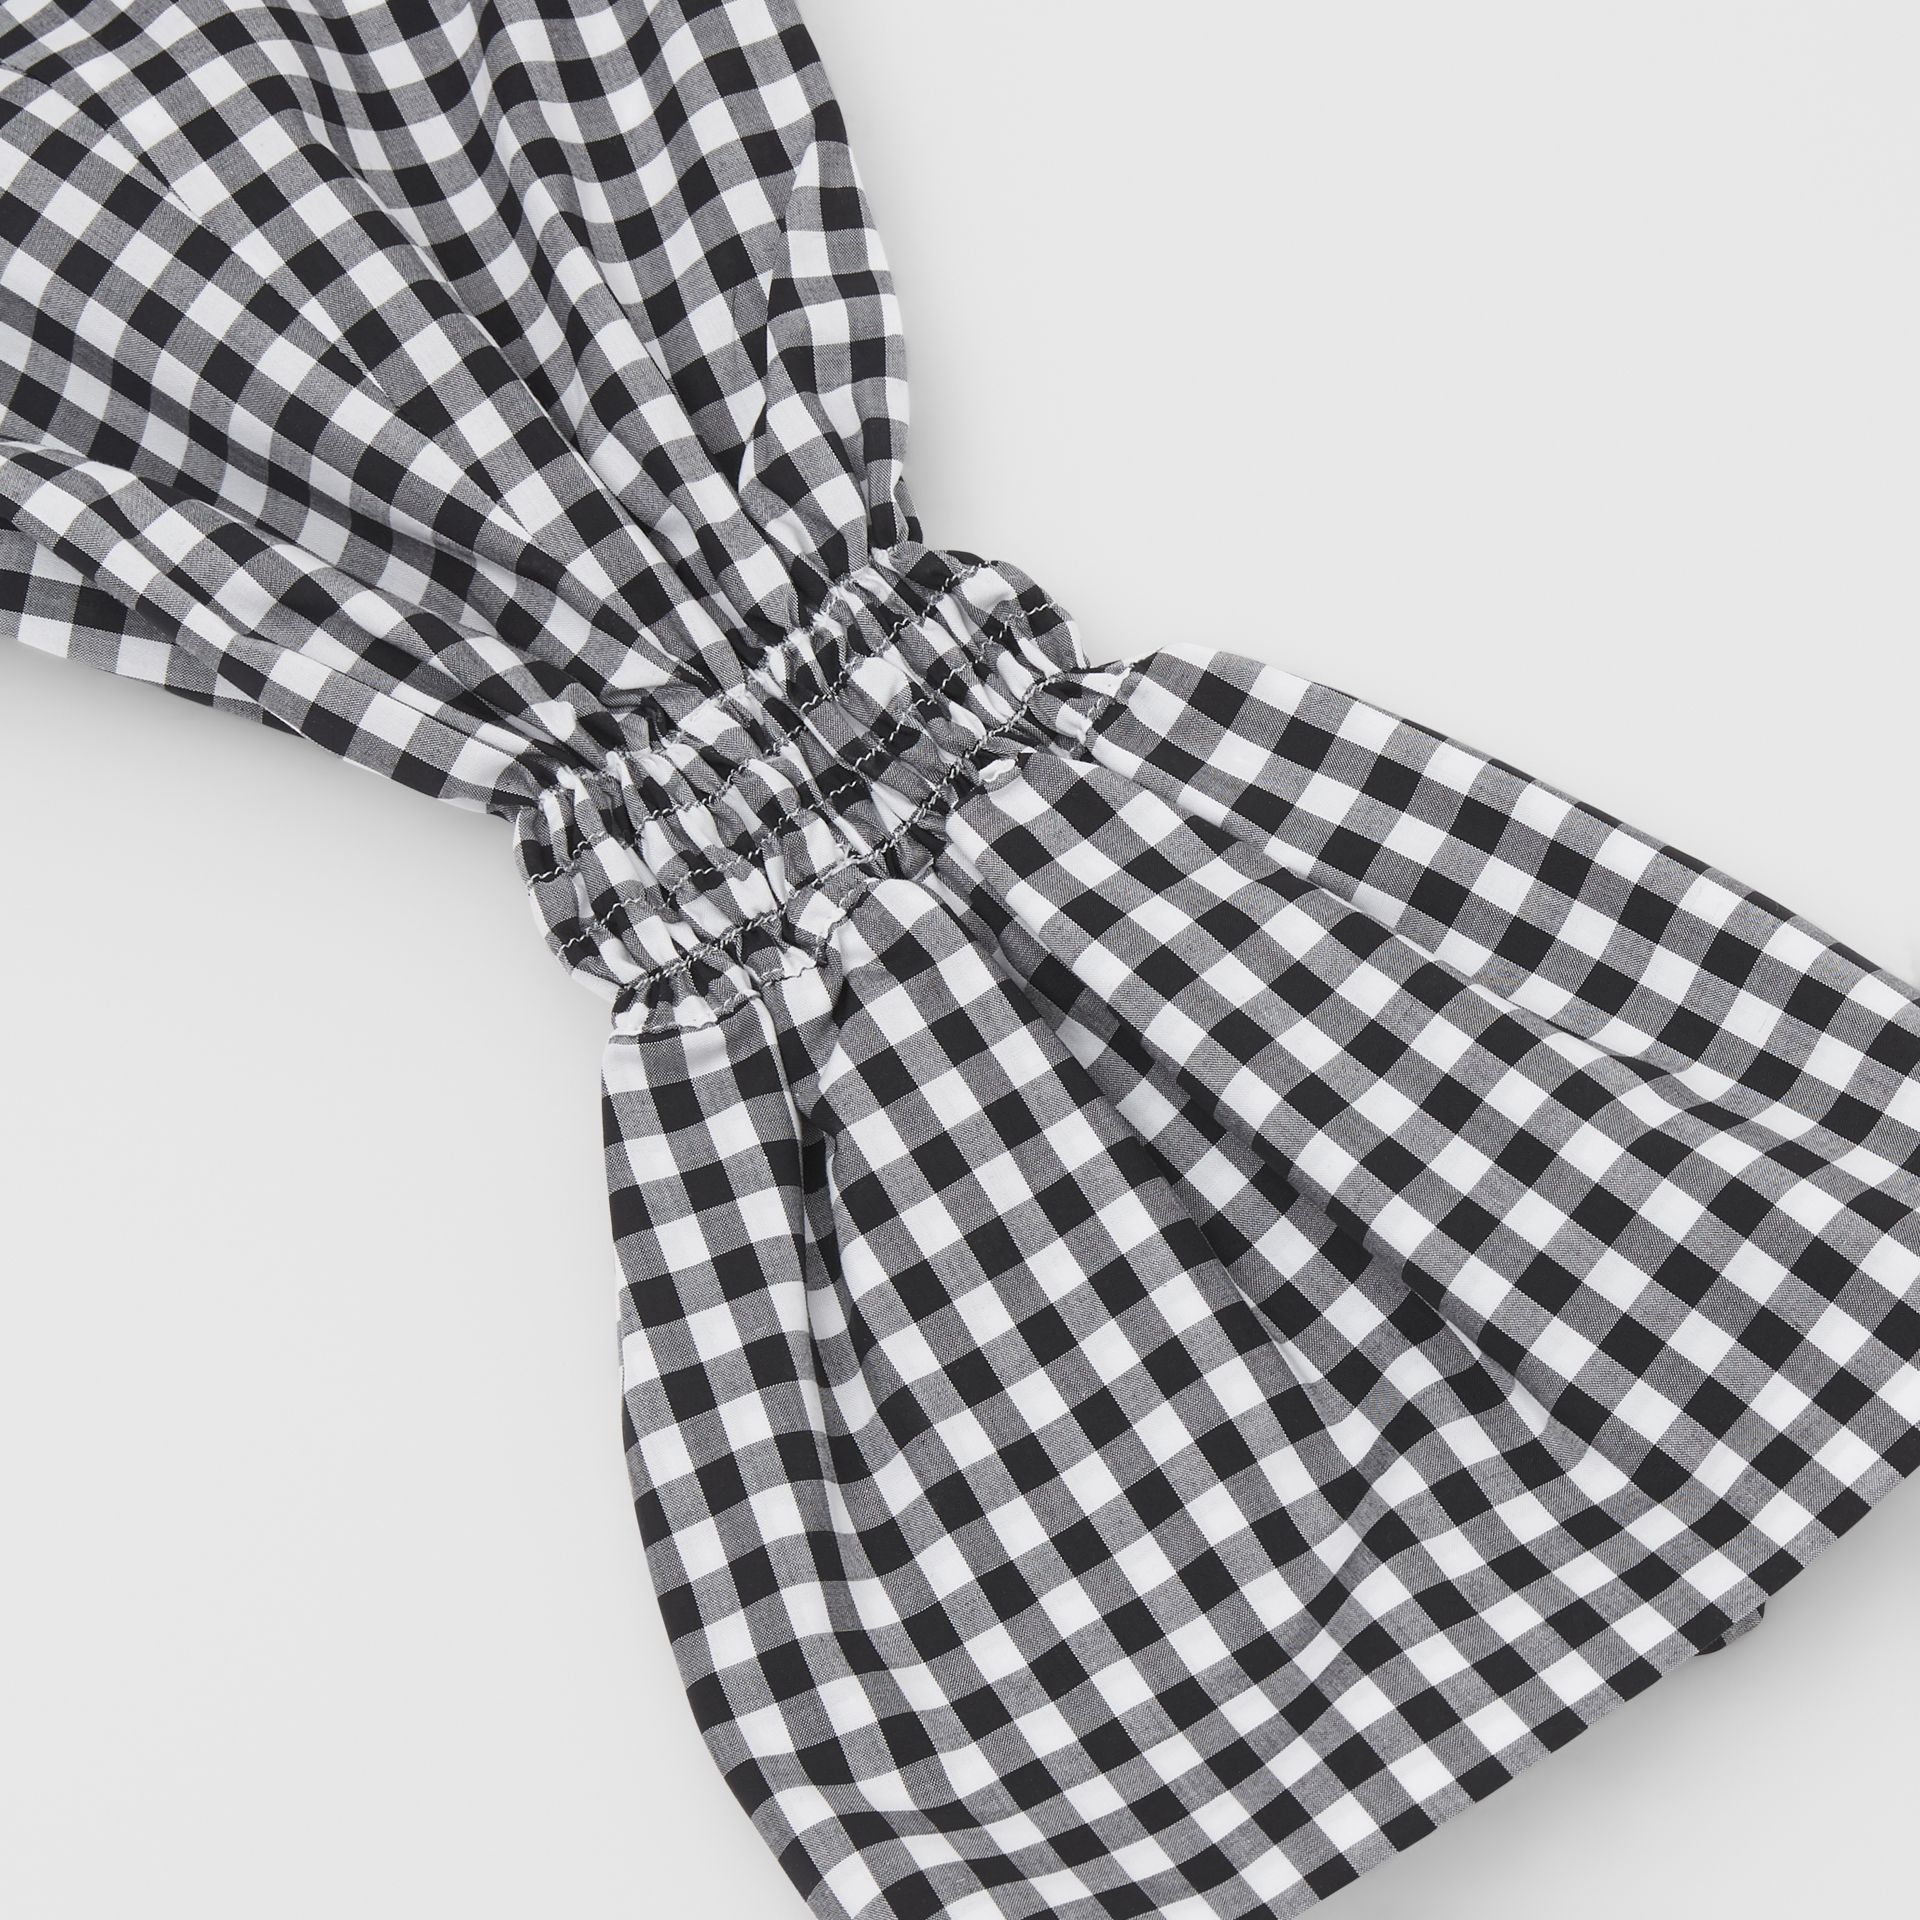 Gingham Cotton Puff Sleeves in Black - Women | Burberry United Kingdom - gallery image 1